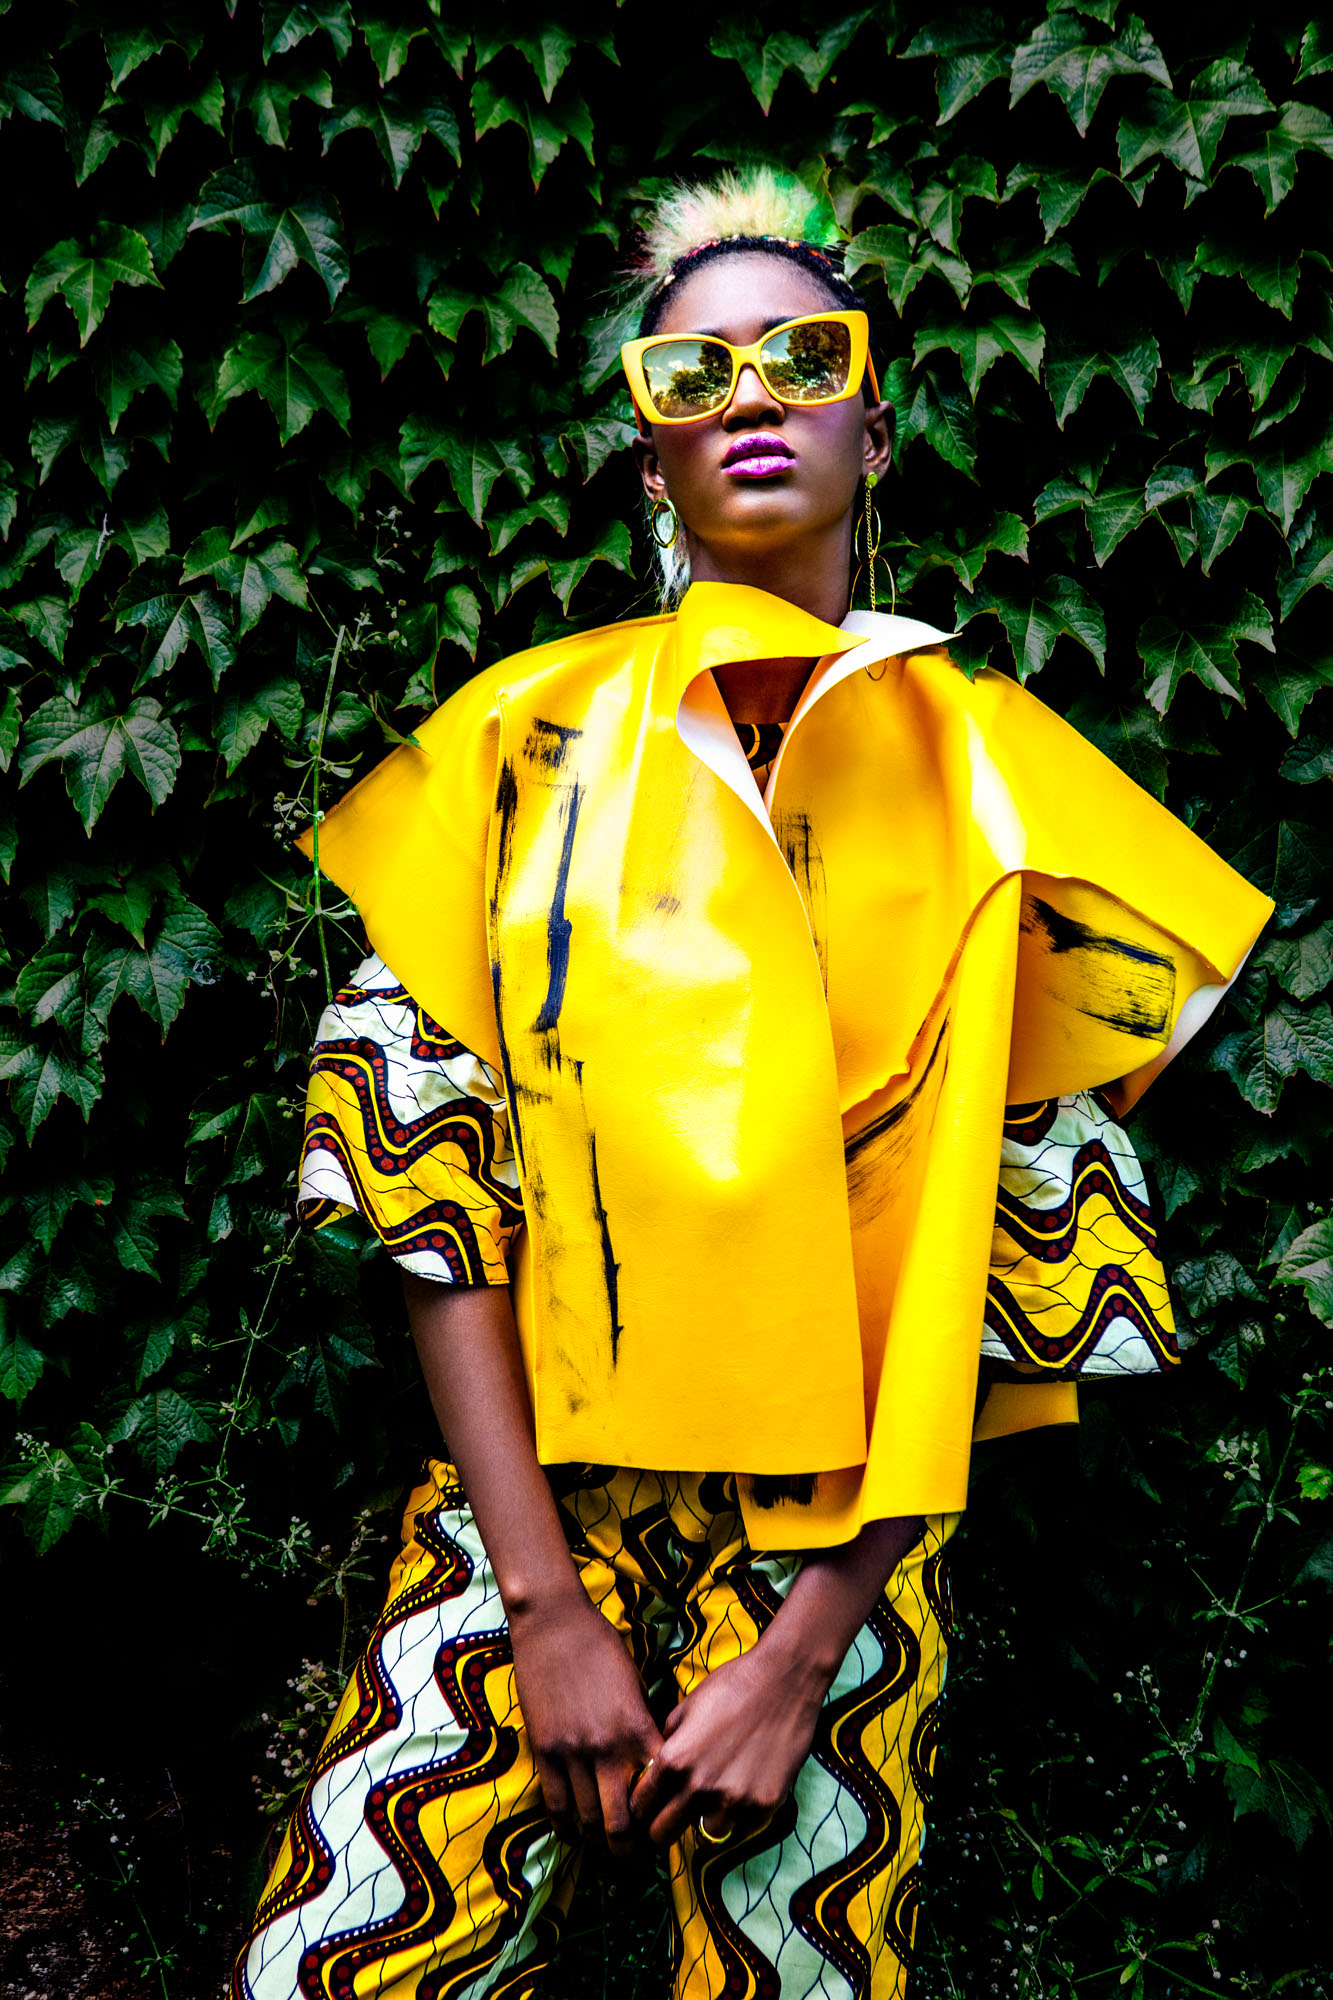 Afropolitain. Photography by Cecil Gillard, edit by Fotolisis